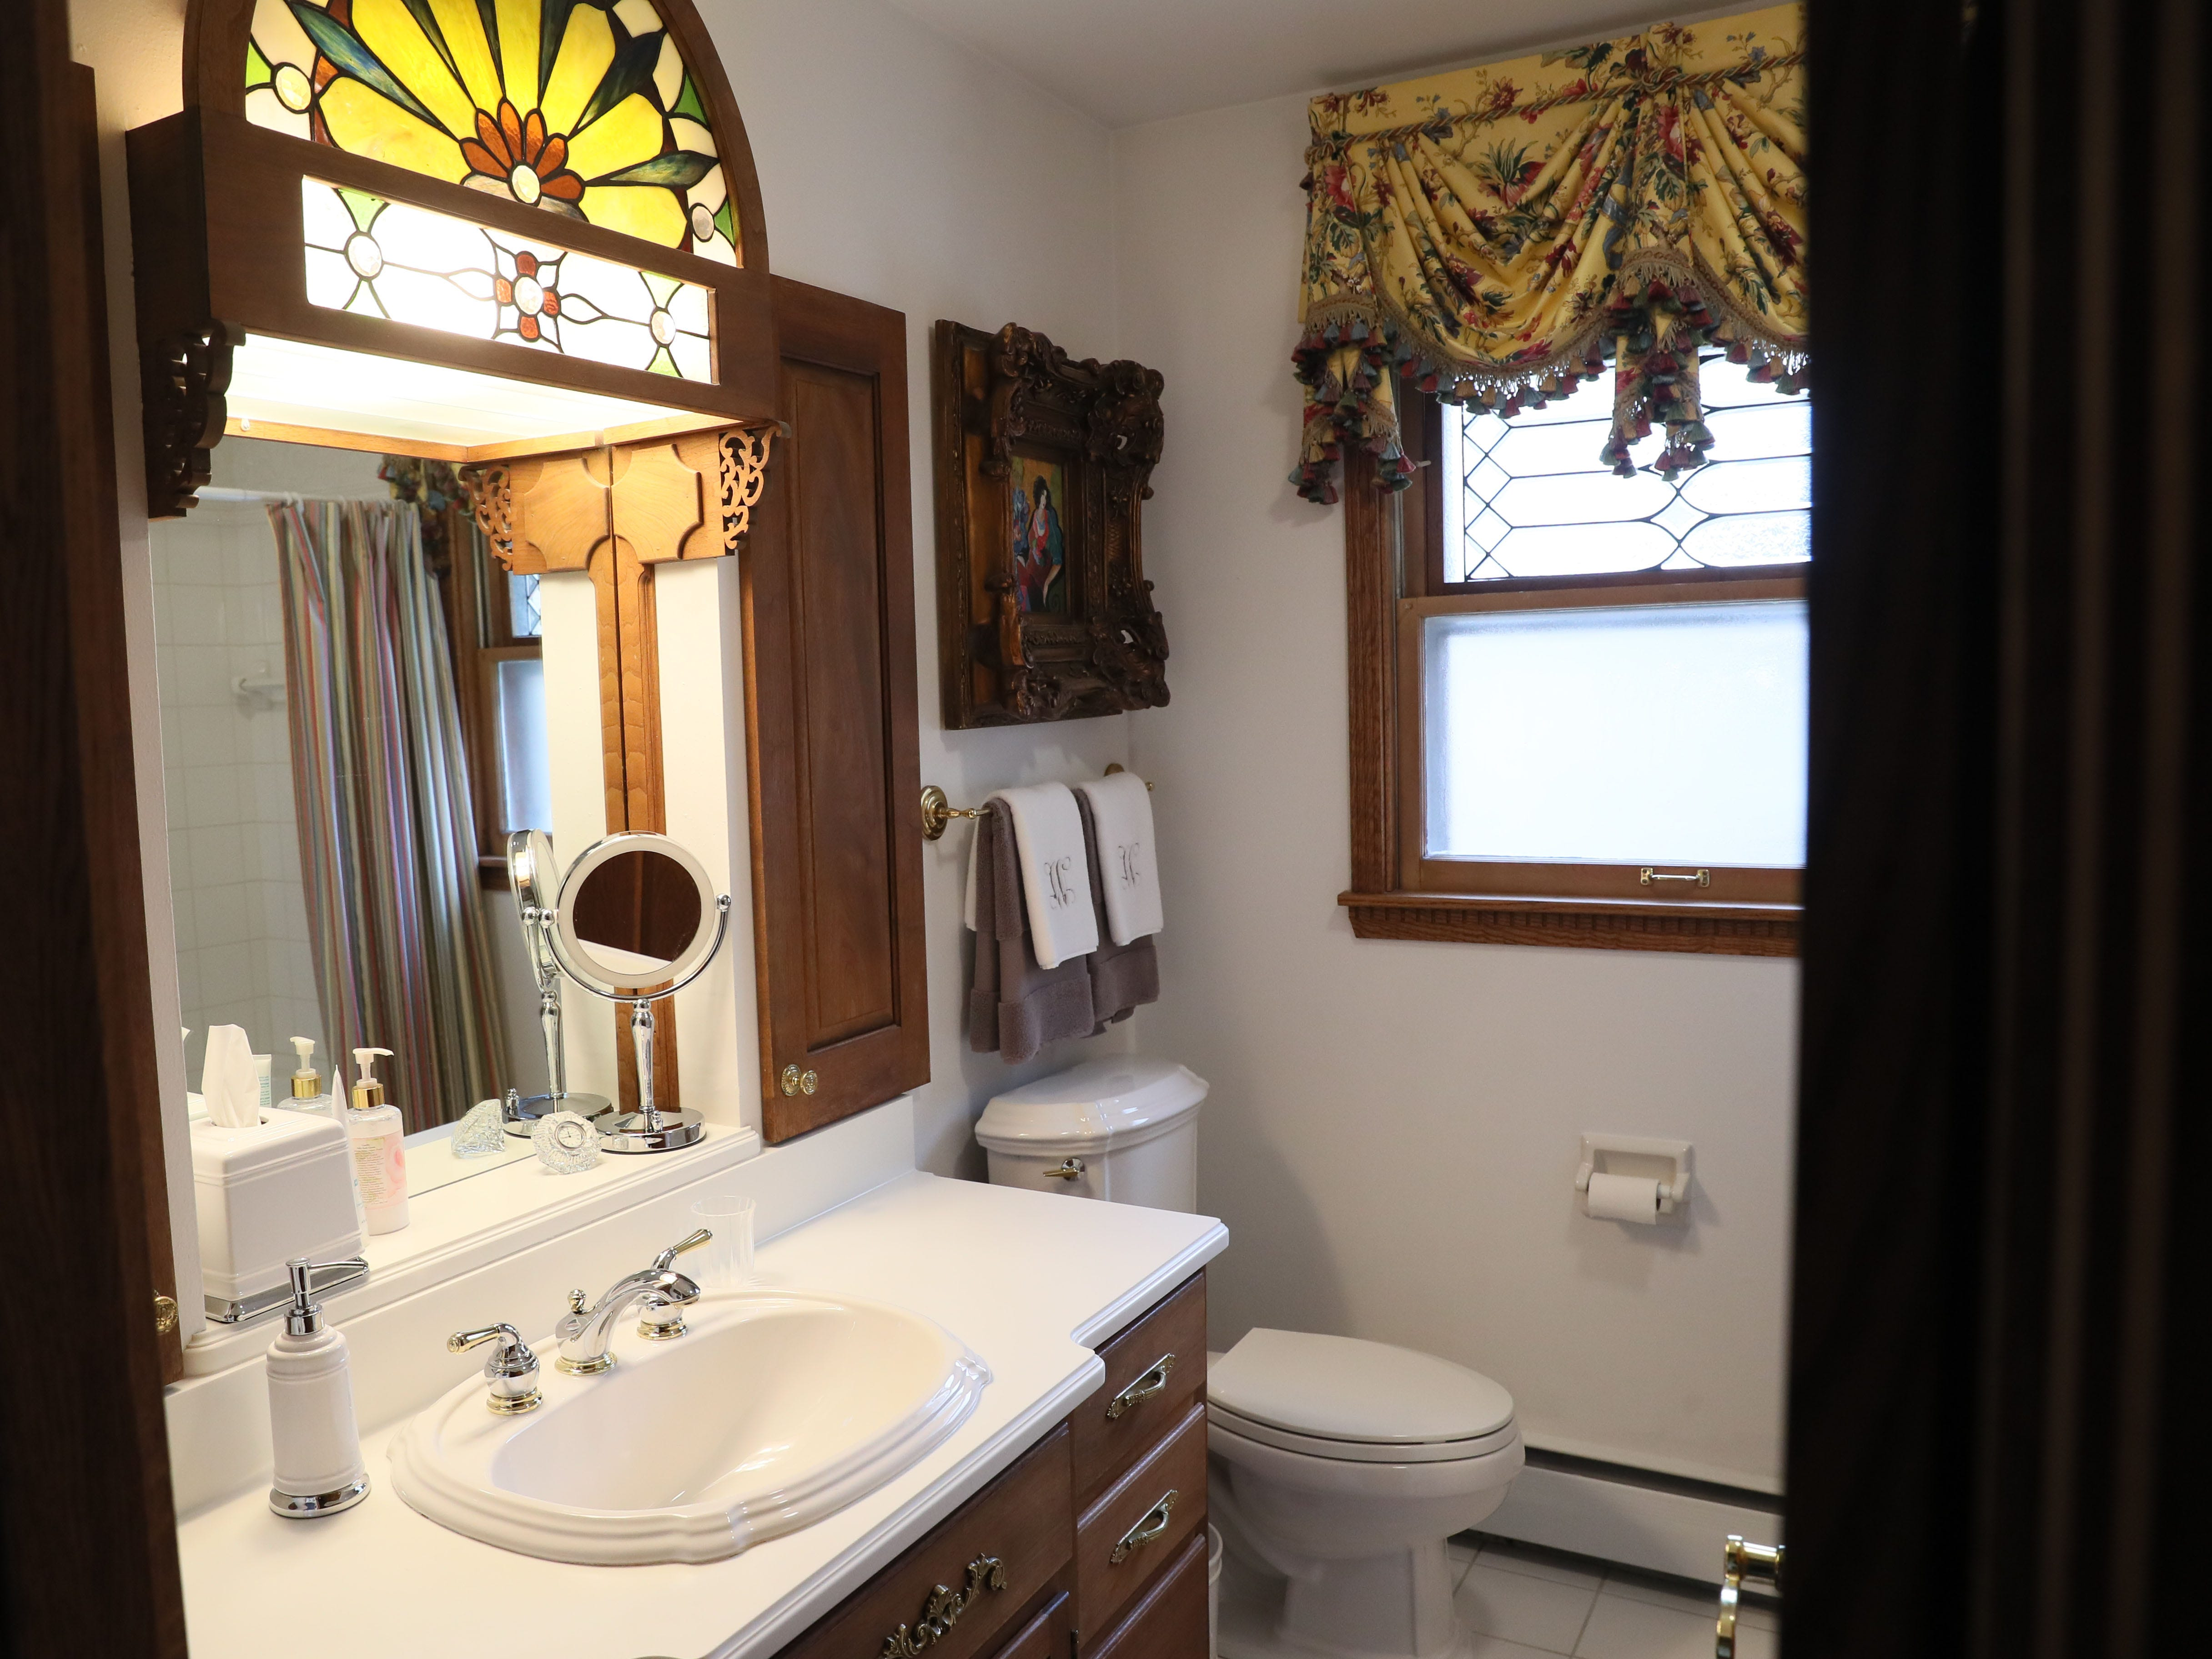 The bathroom features a stained glass light and formal window treatment.